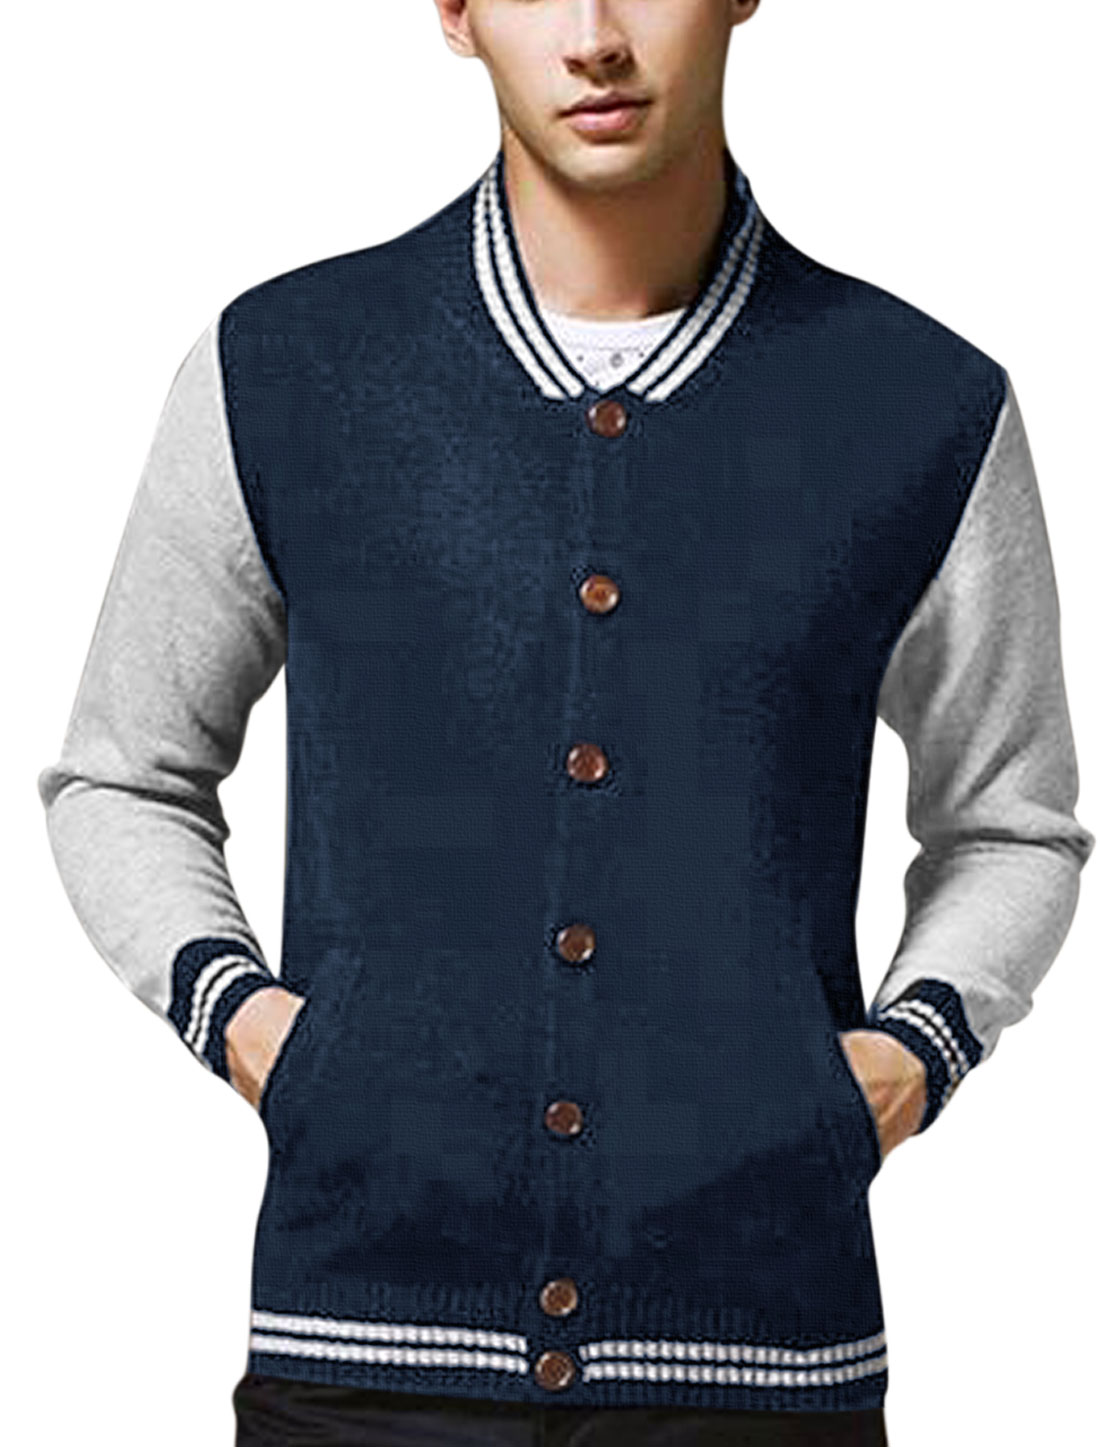 Men Stripes Detail Contrast Color Pockets Front Casual Cardigan Navy Blue M